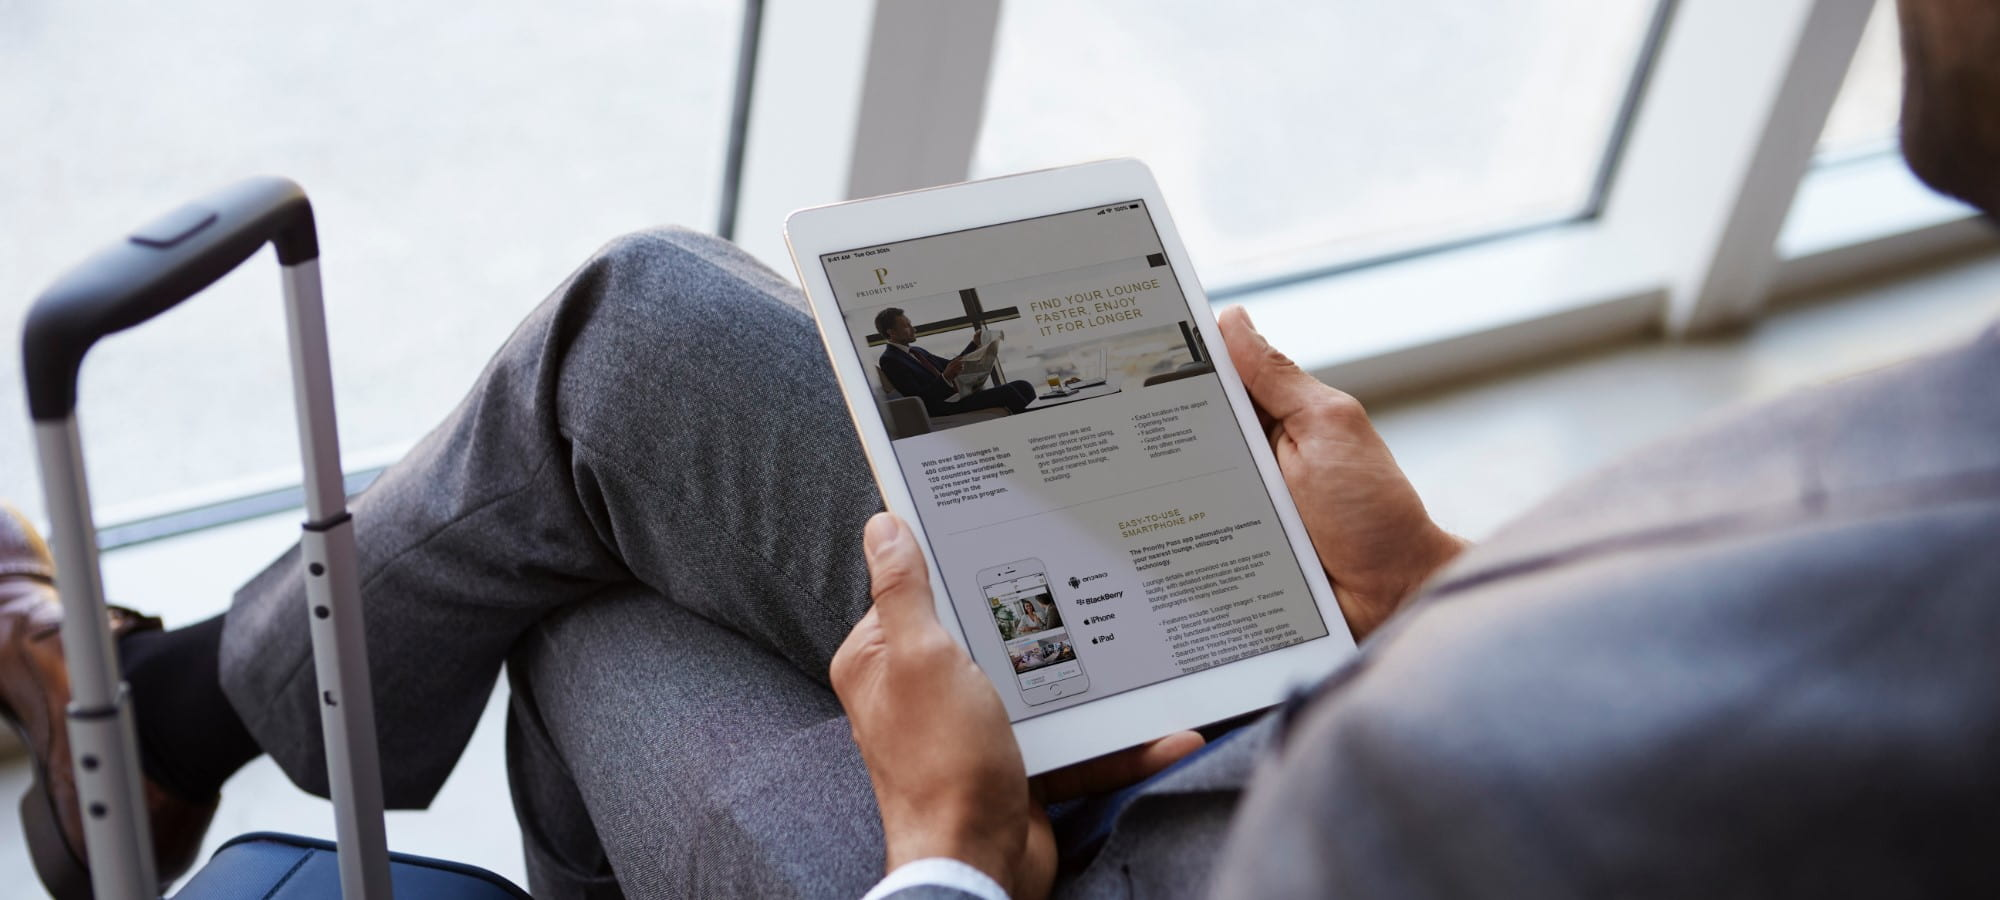 Man reading priority pass website on tablet in airport lounge